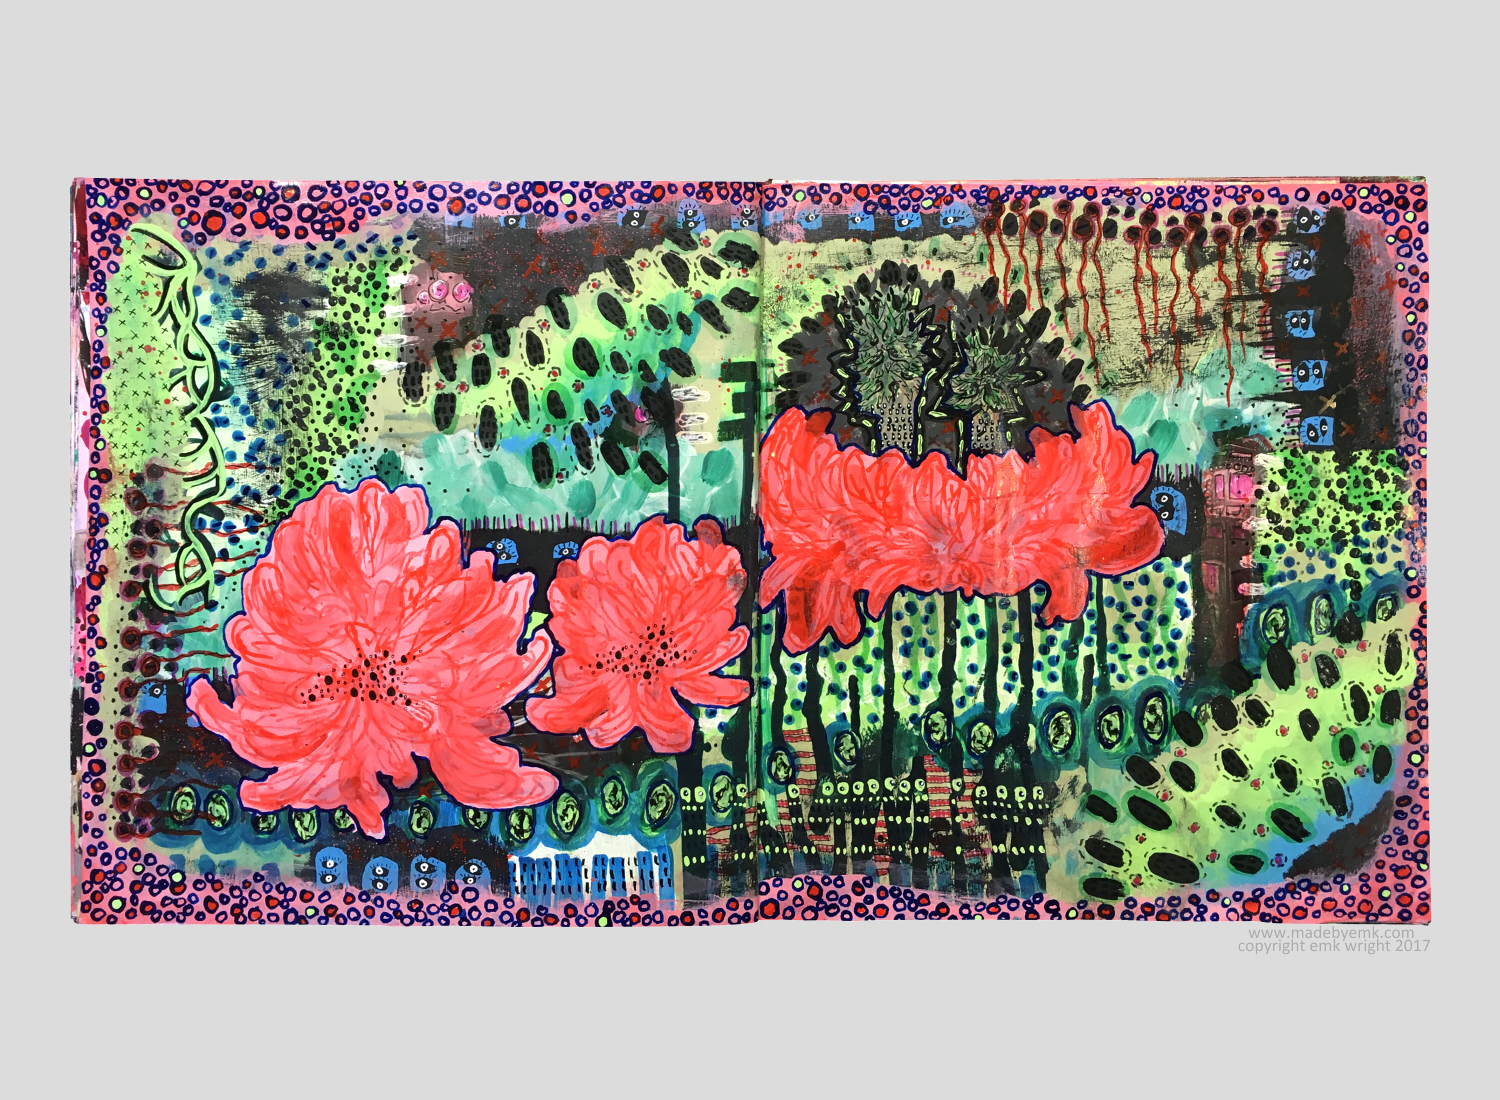 overgrown-art-journal-page-mixed-media-copyright-emk-wright-2017.jpg